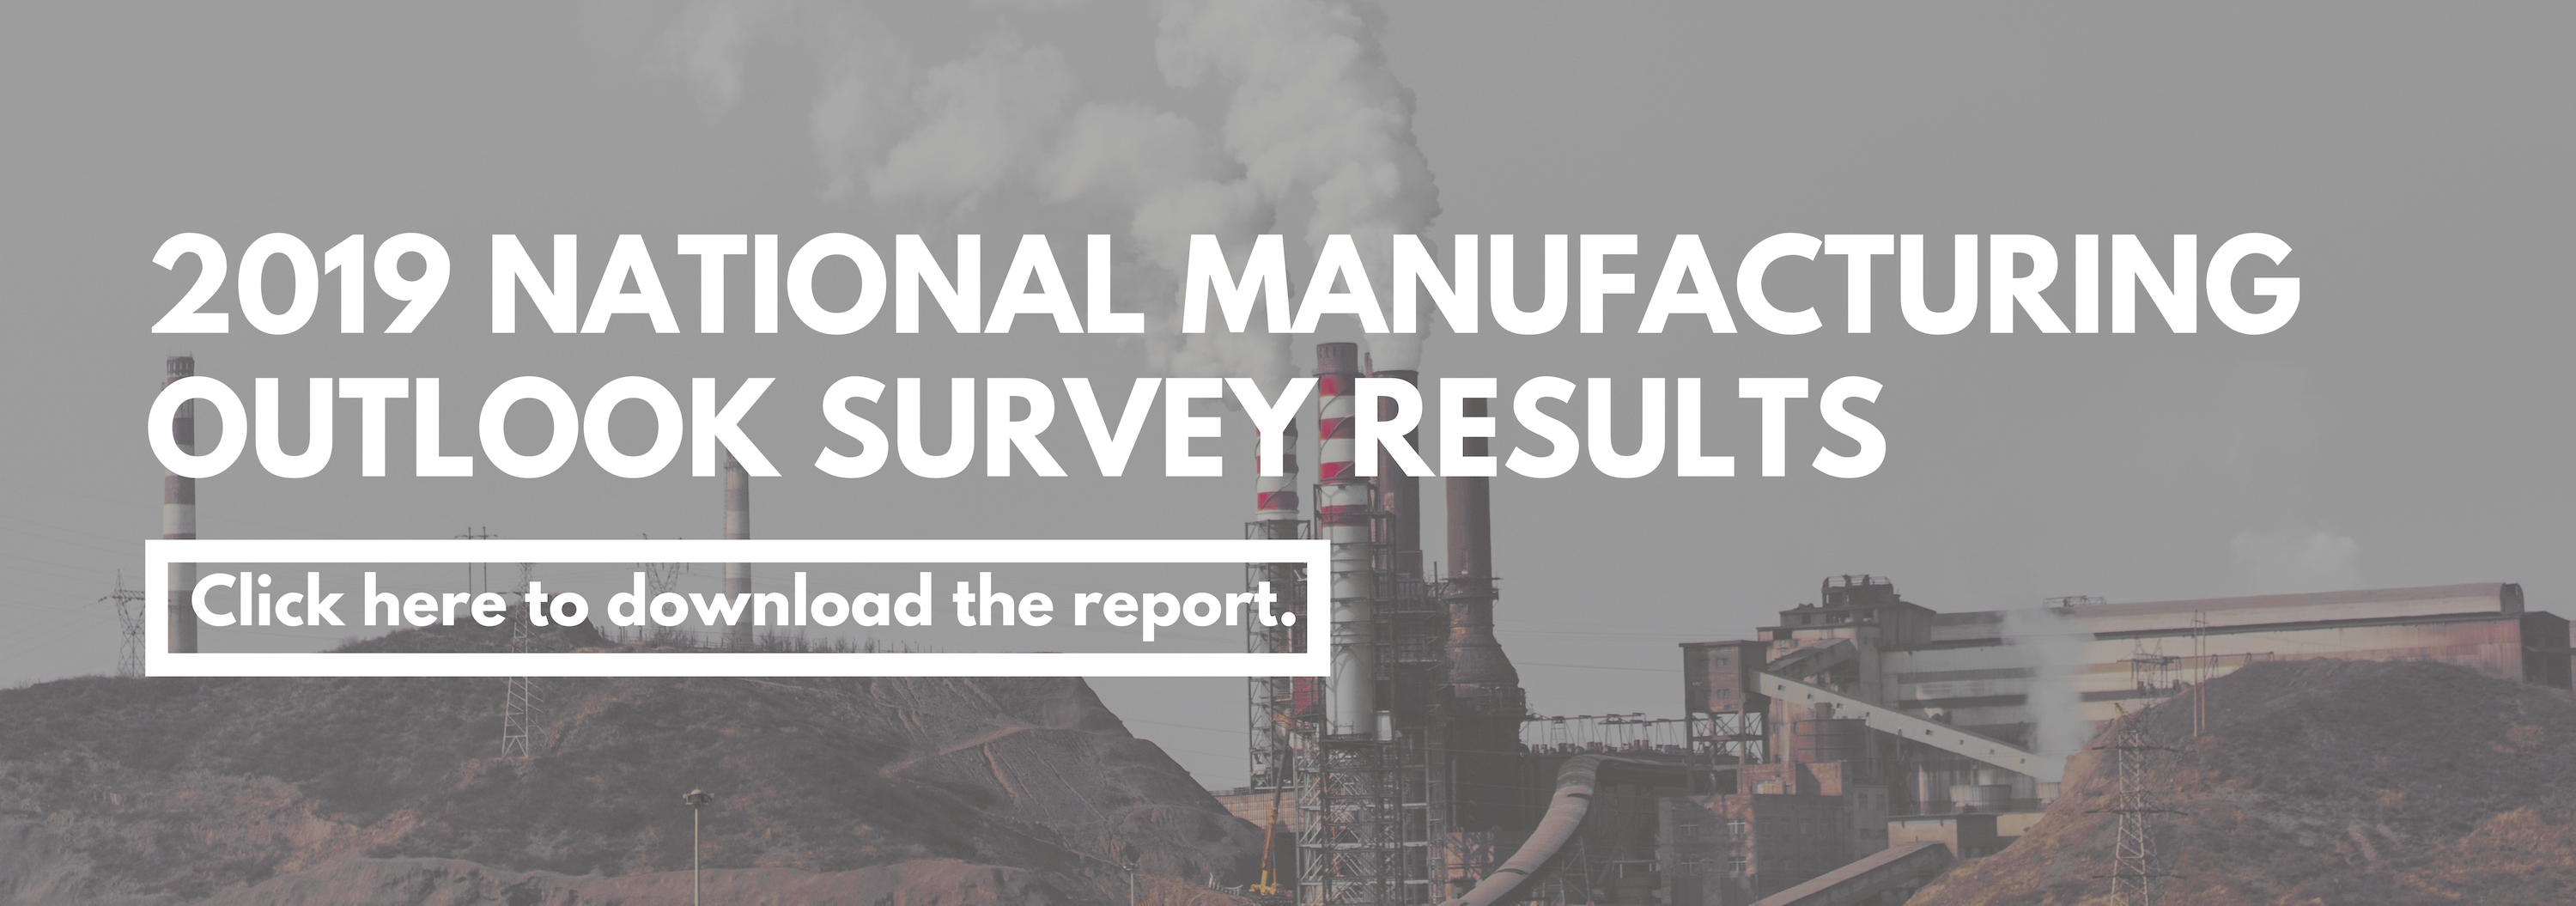 2019 NATIONAL MANUFACTURING OUTLOOK SURVEY RESULTS